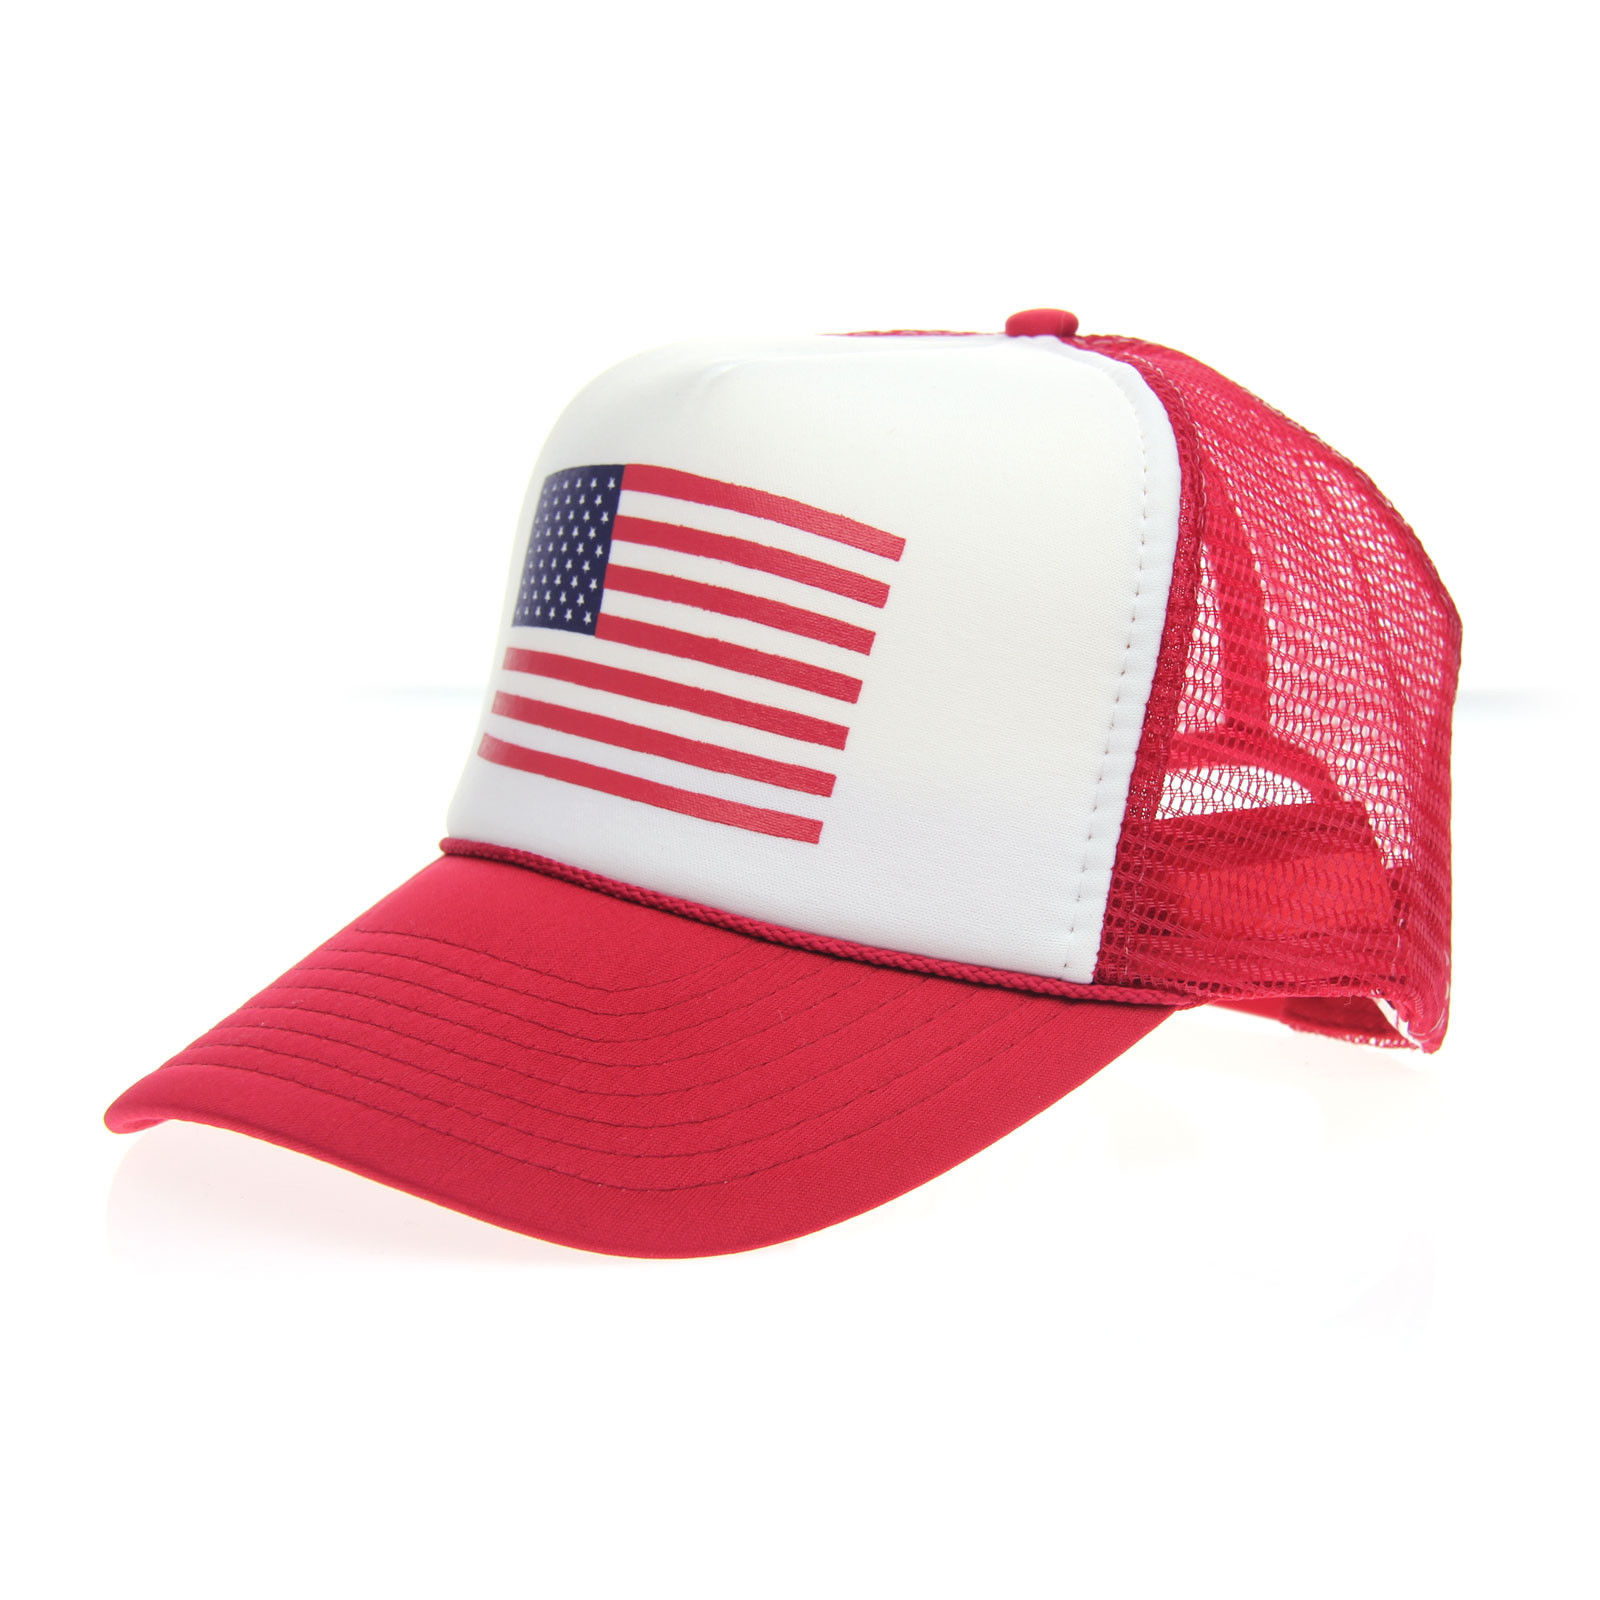 American Flag Adjustable Snap Patriotic USA Classic Mesh Summer Trucker Hat New